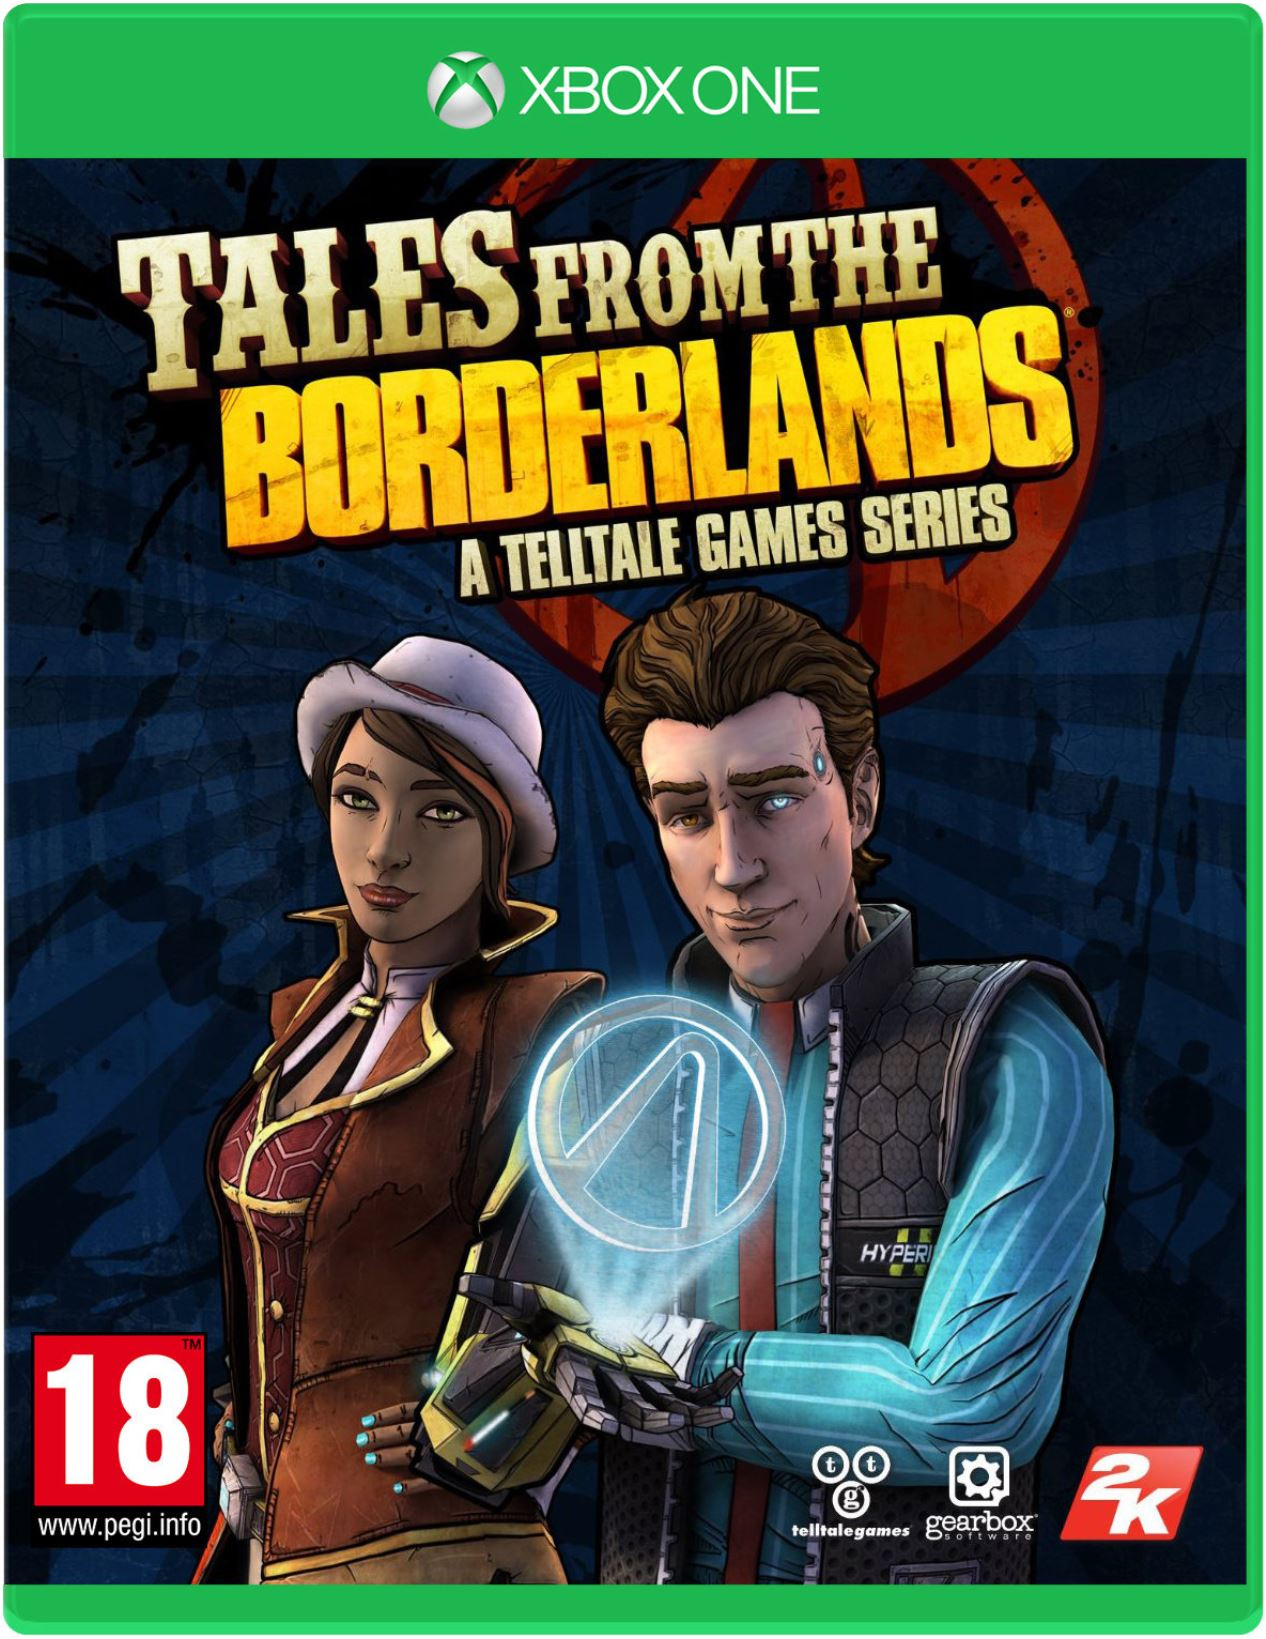 TALES FROM THE BORDERLANDS: A TELLTALE GAMES SERIES - Xone